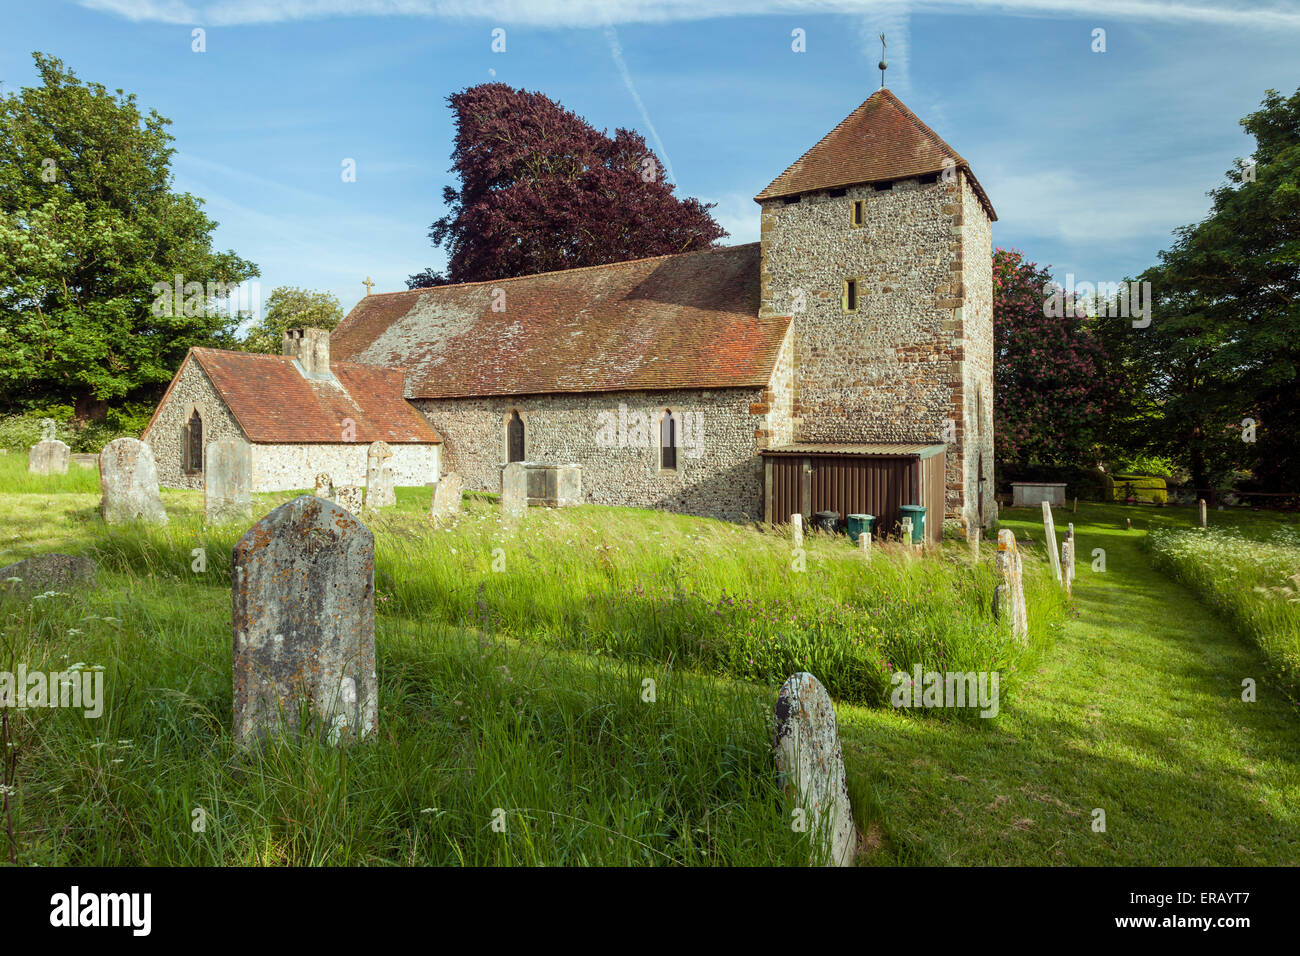 Spring afternoon at St Michael's church in South Malling, Lewes, East Sussex, England. Stock Photo